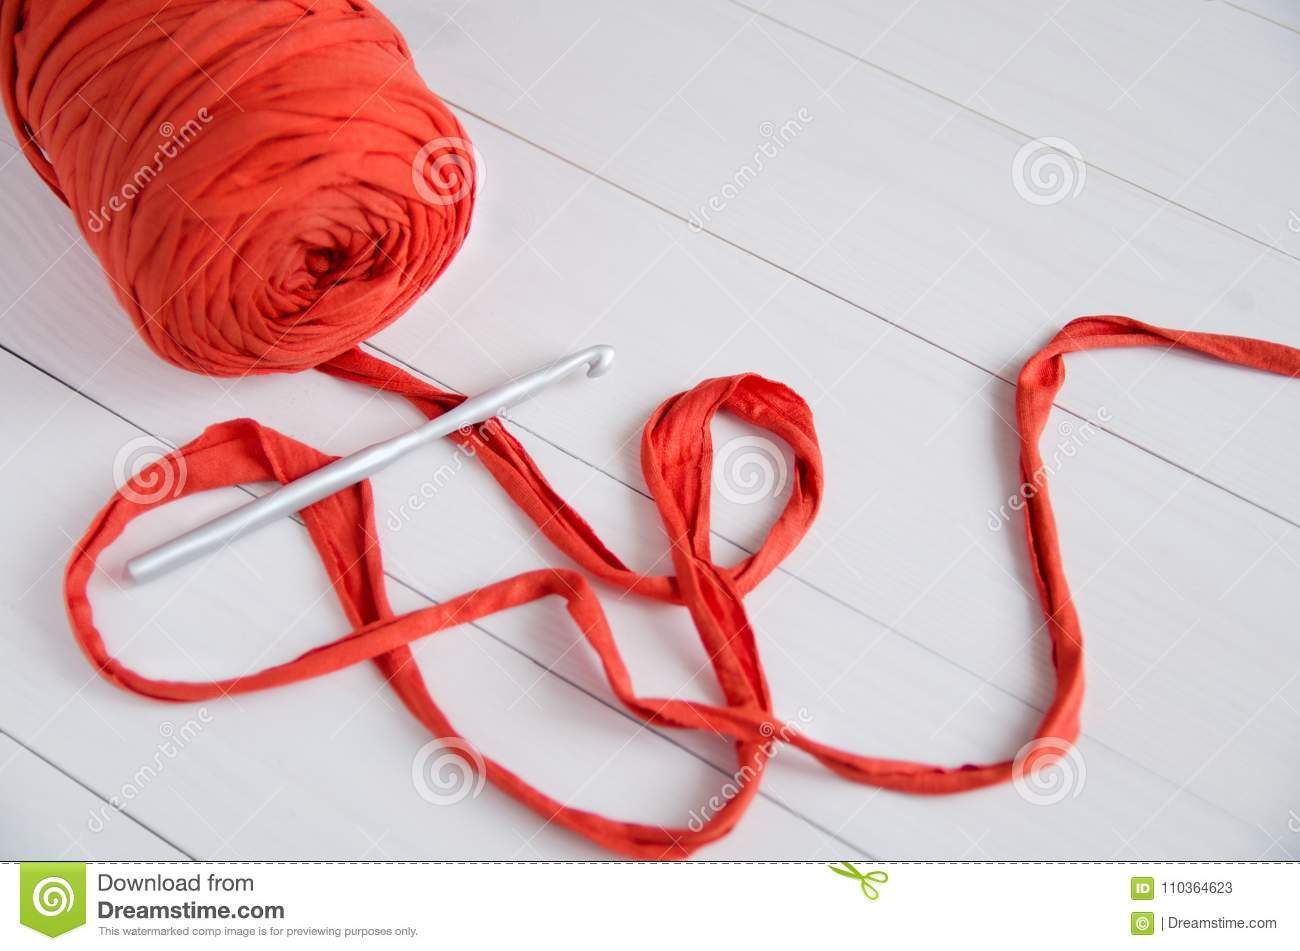 Roll The Cotton Yarn And Crochet Hook On White Wooden